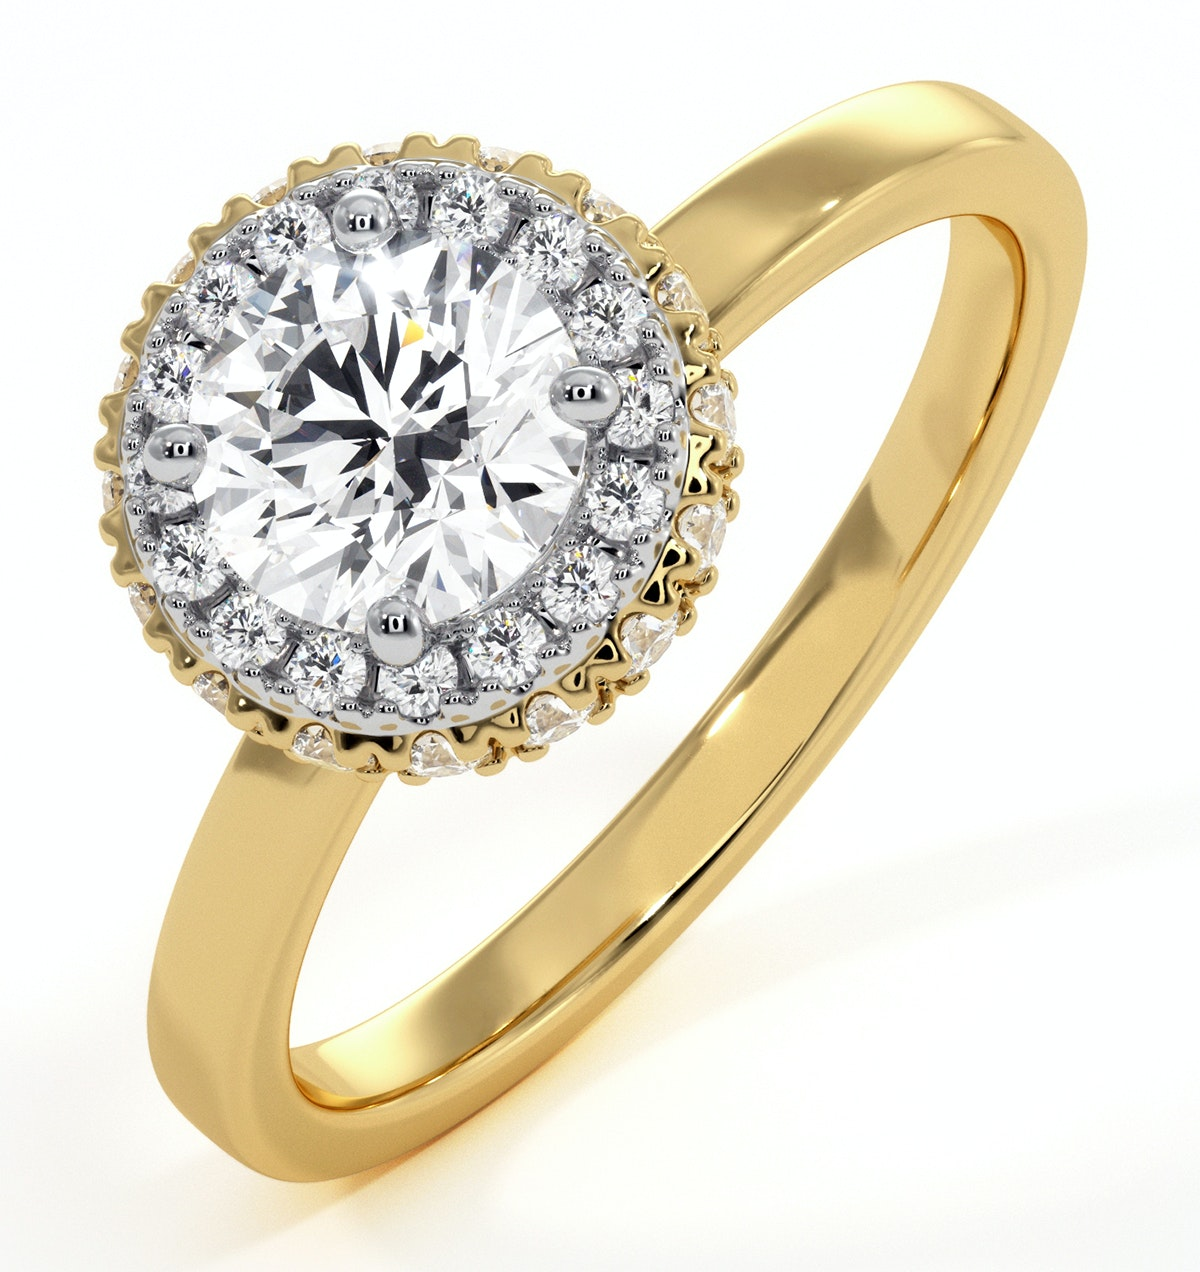 Eleanor GIA Diamond Halo Engagement Ring in 18K Gold 0.87ct G/VS2